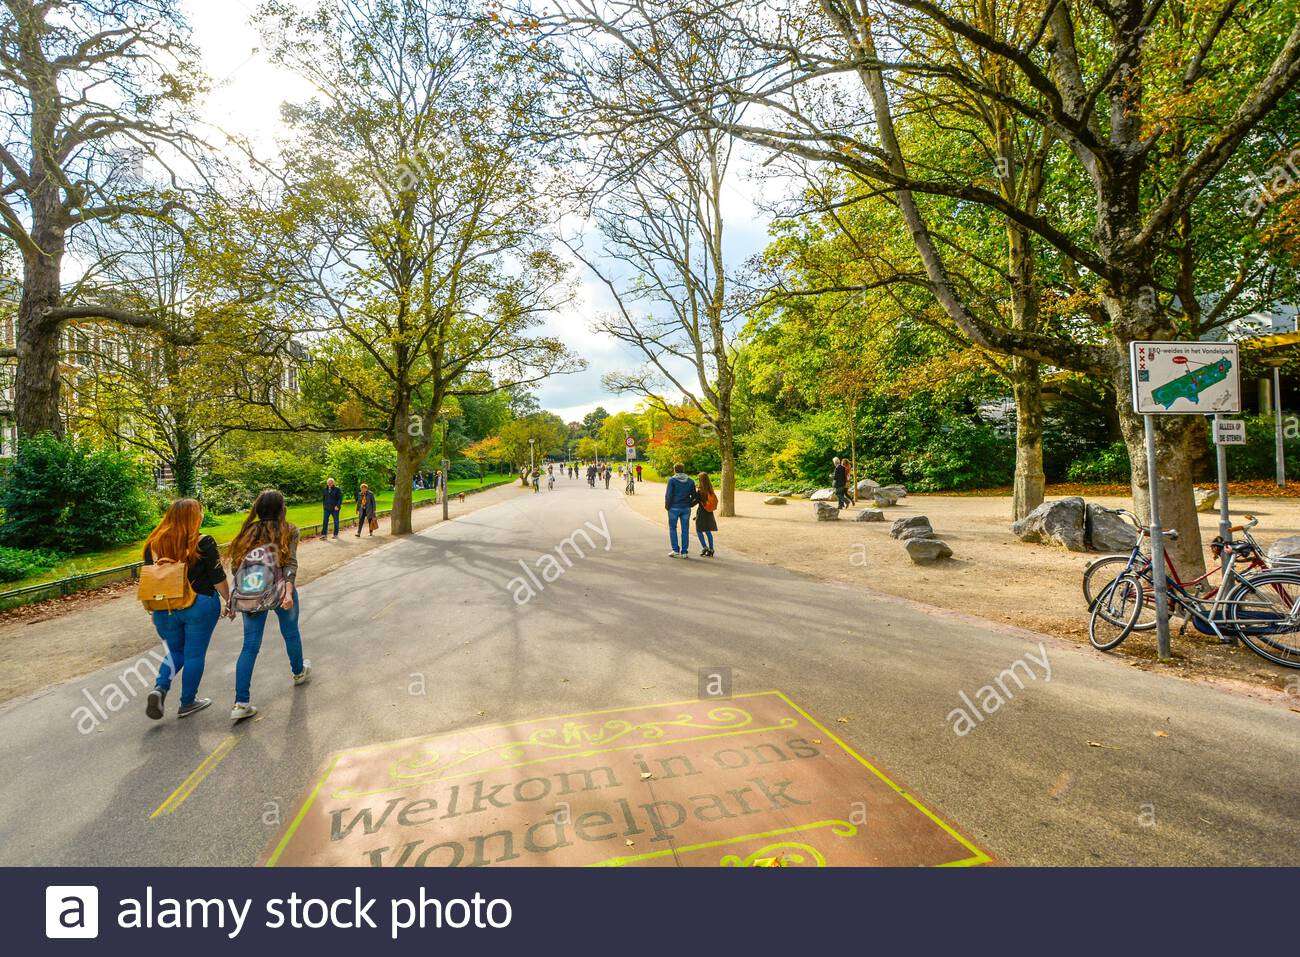 Tourists and locals enjoy an afternoon at Vondelpark, the large city park in the museum district of Amsterdam, Netherlands in early autumn. Stock Photo